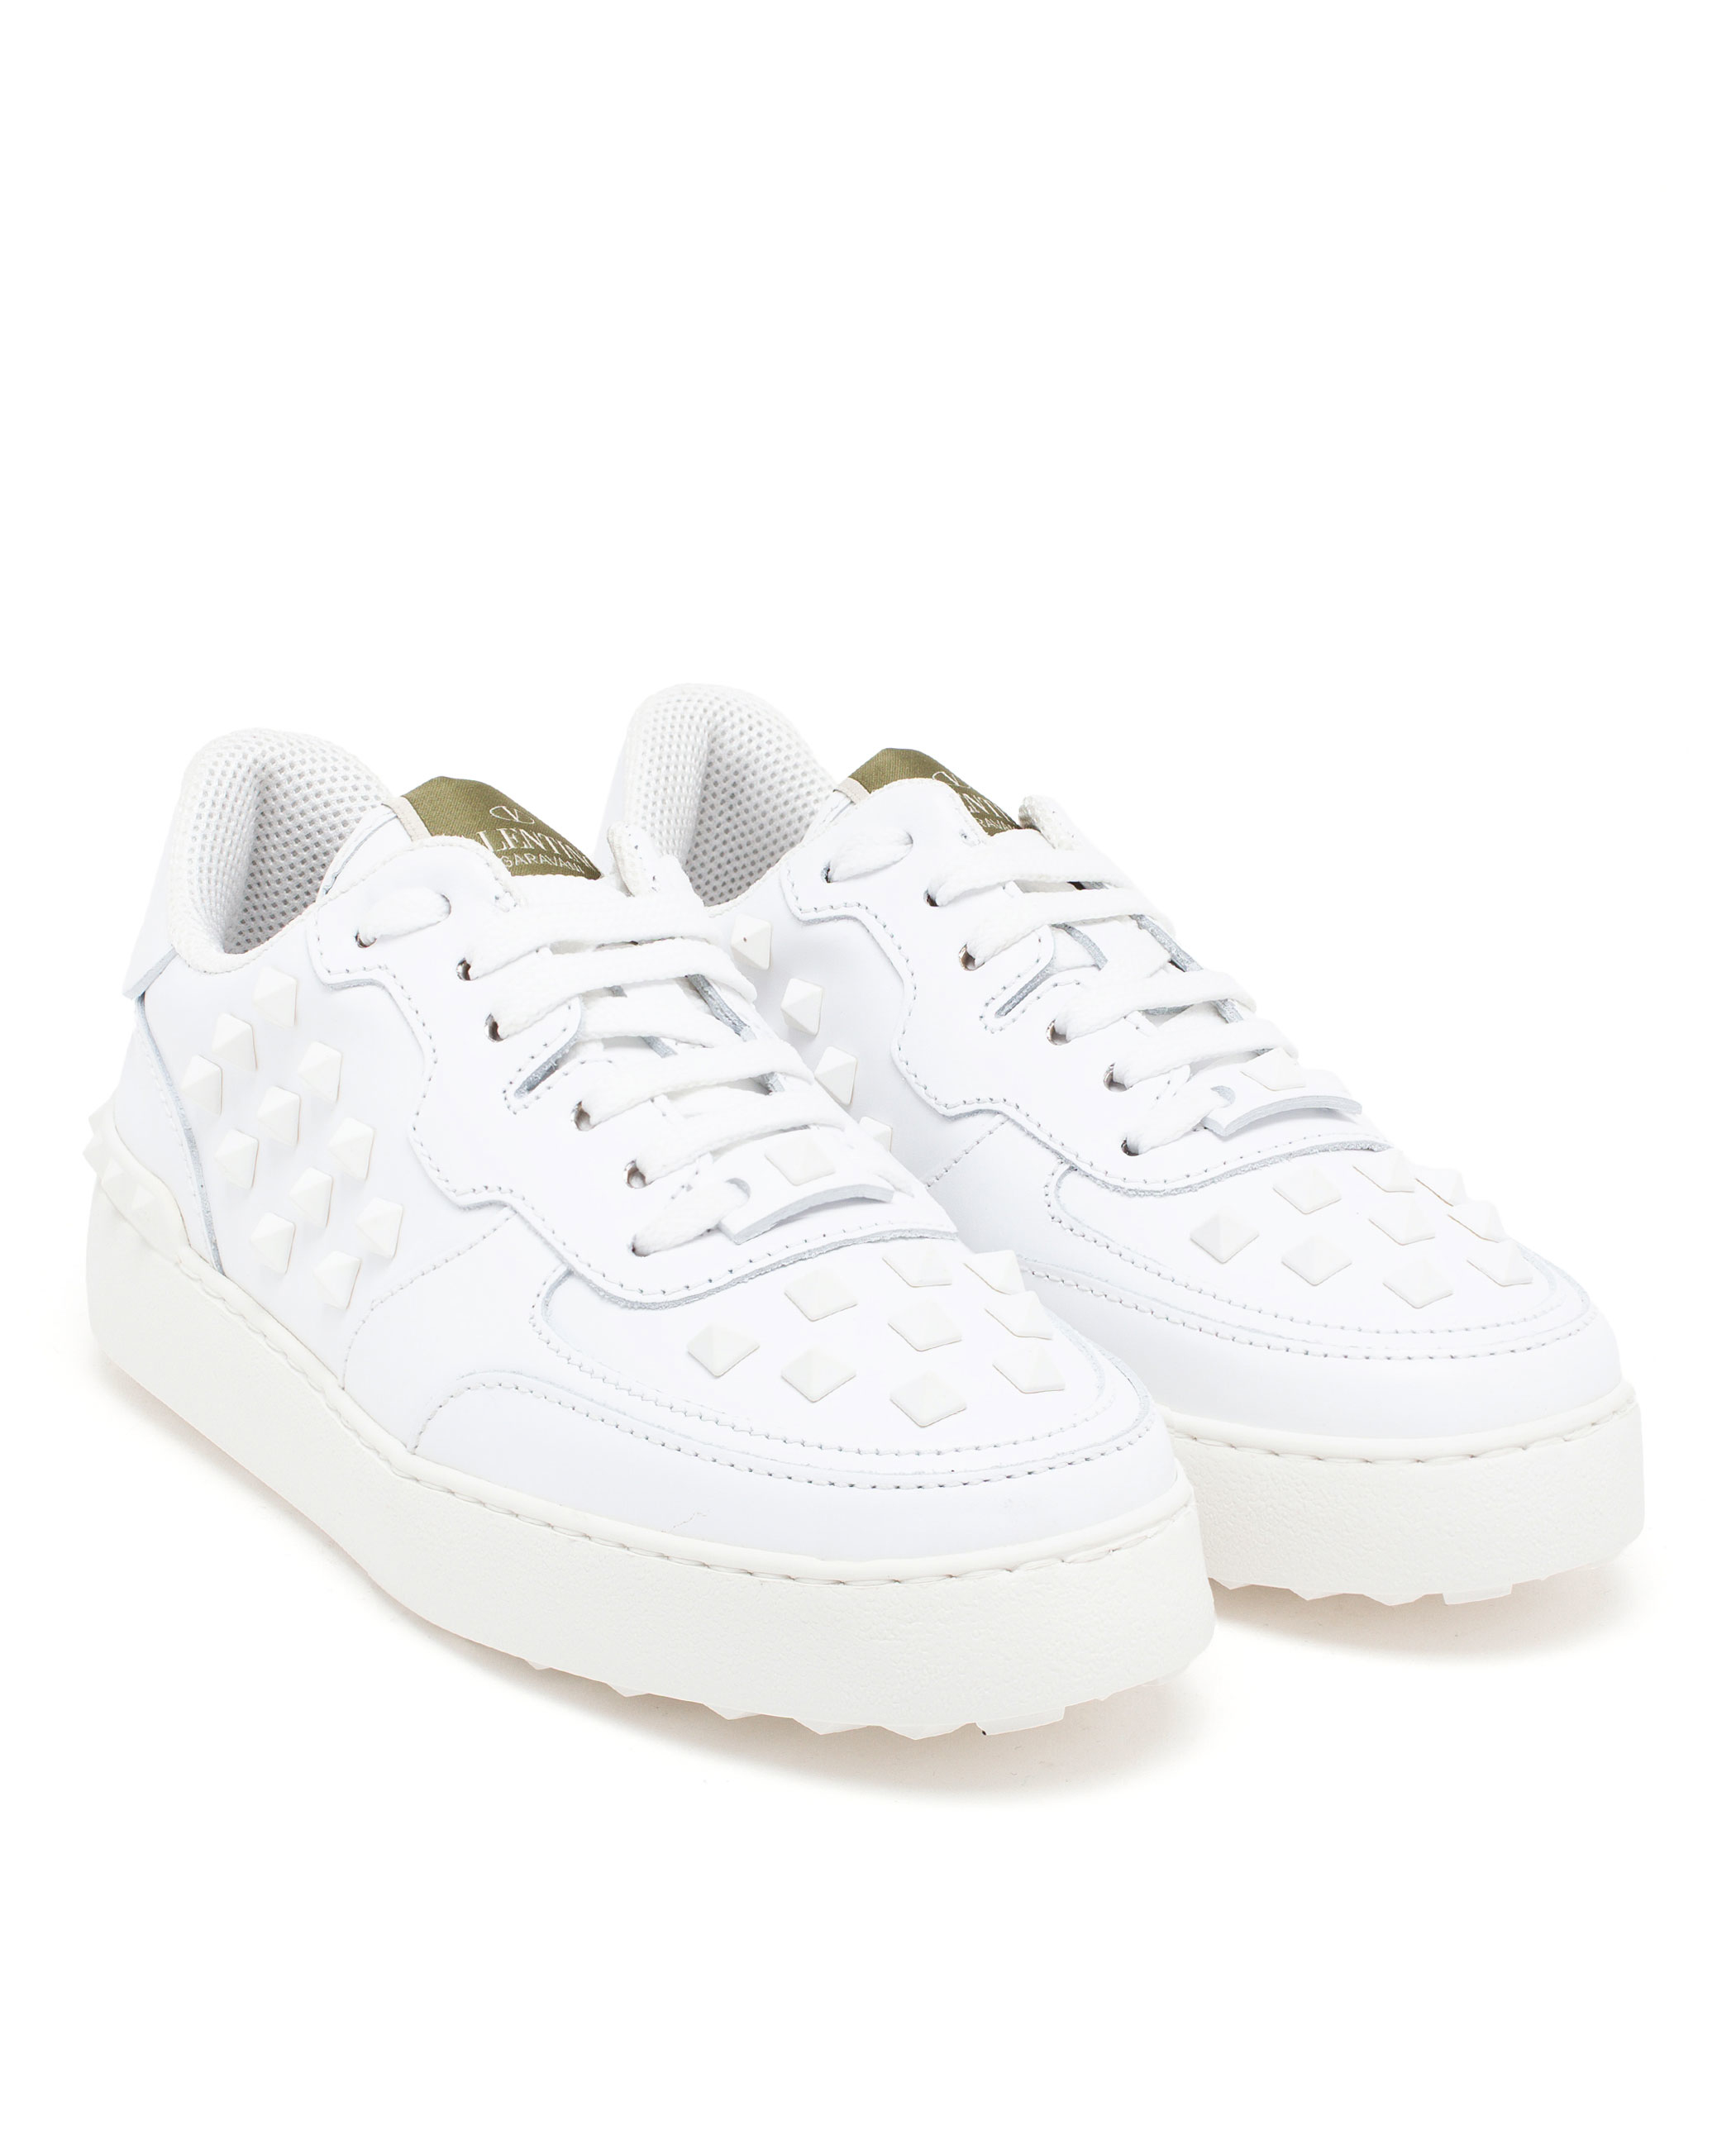 Valentino Rockstud Trainers in White - Lyst